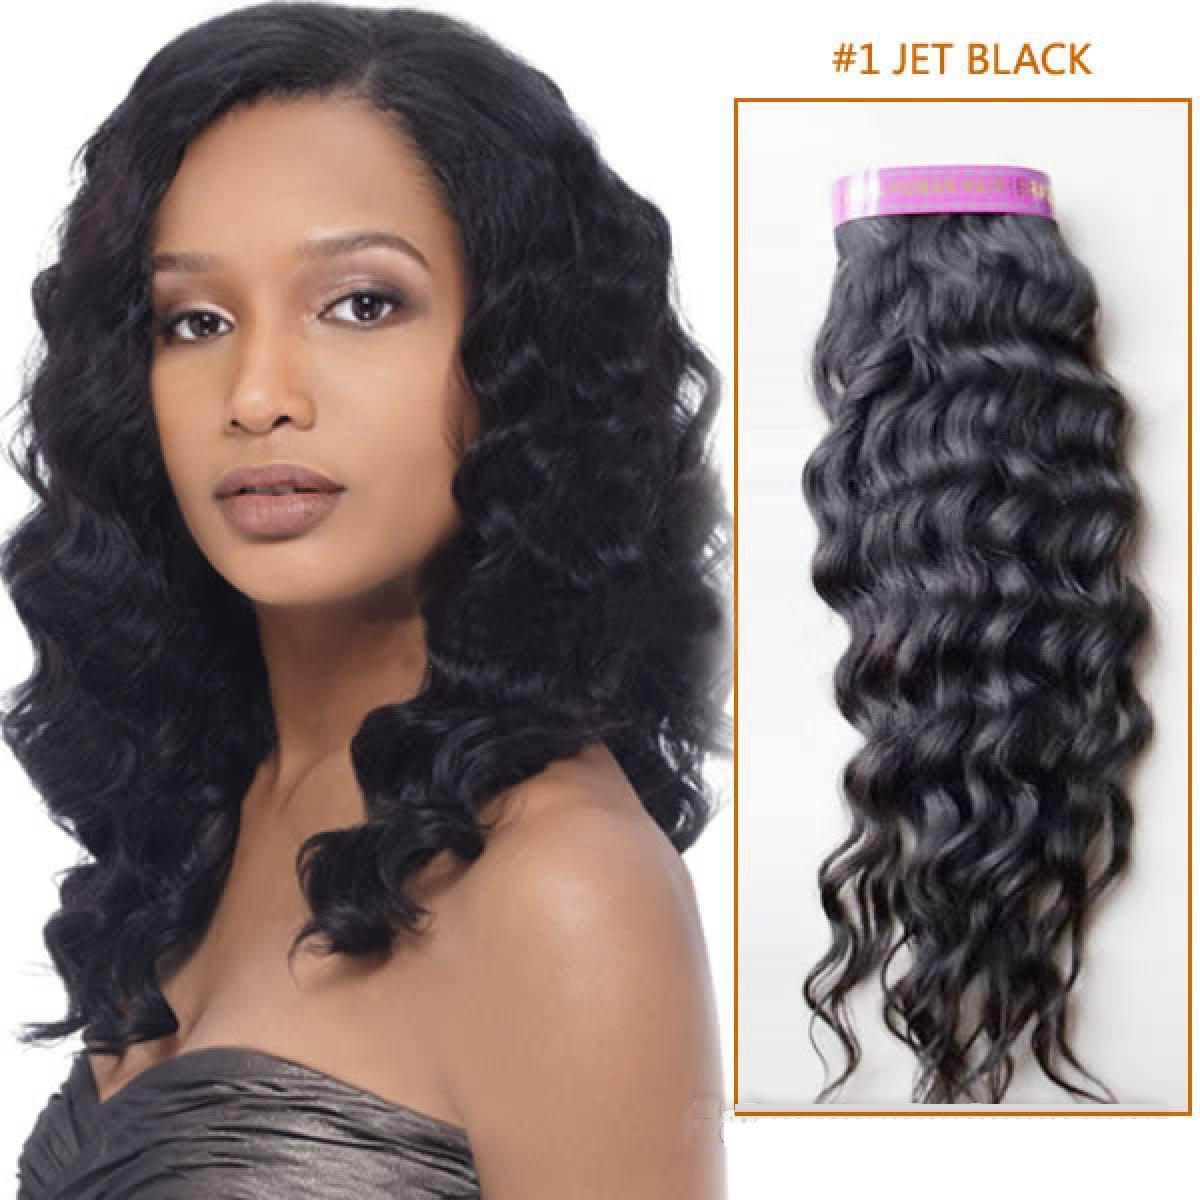 14 Inch #1 Jet Black Curly Brazilian Virgin Hair Wefts